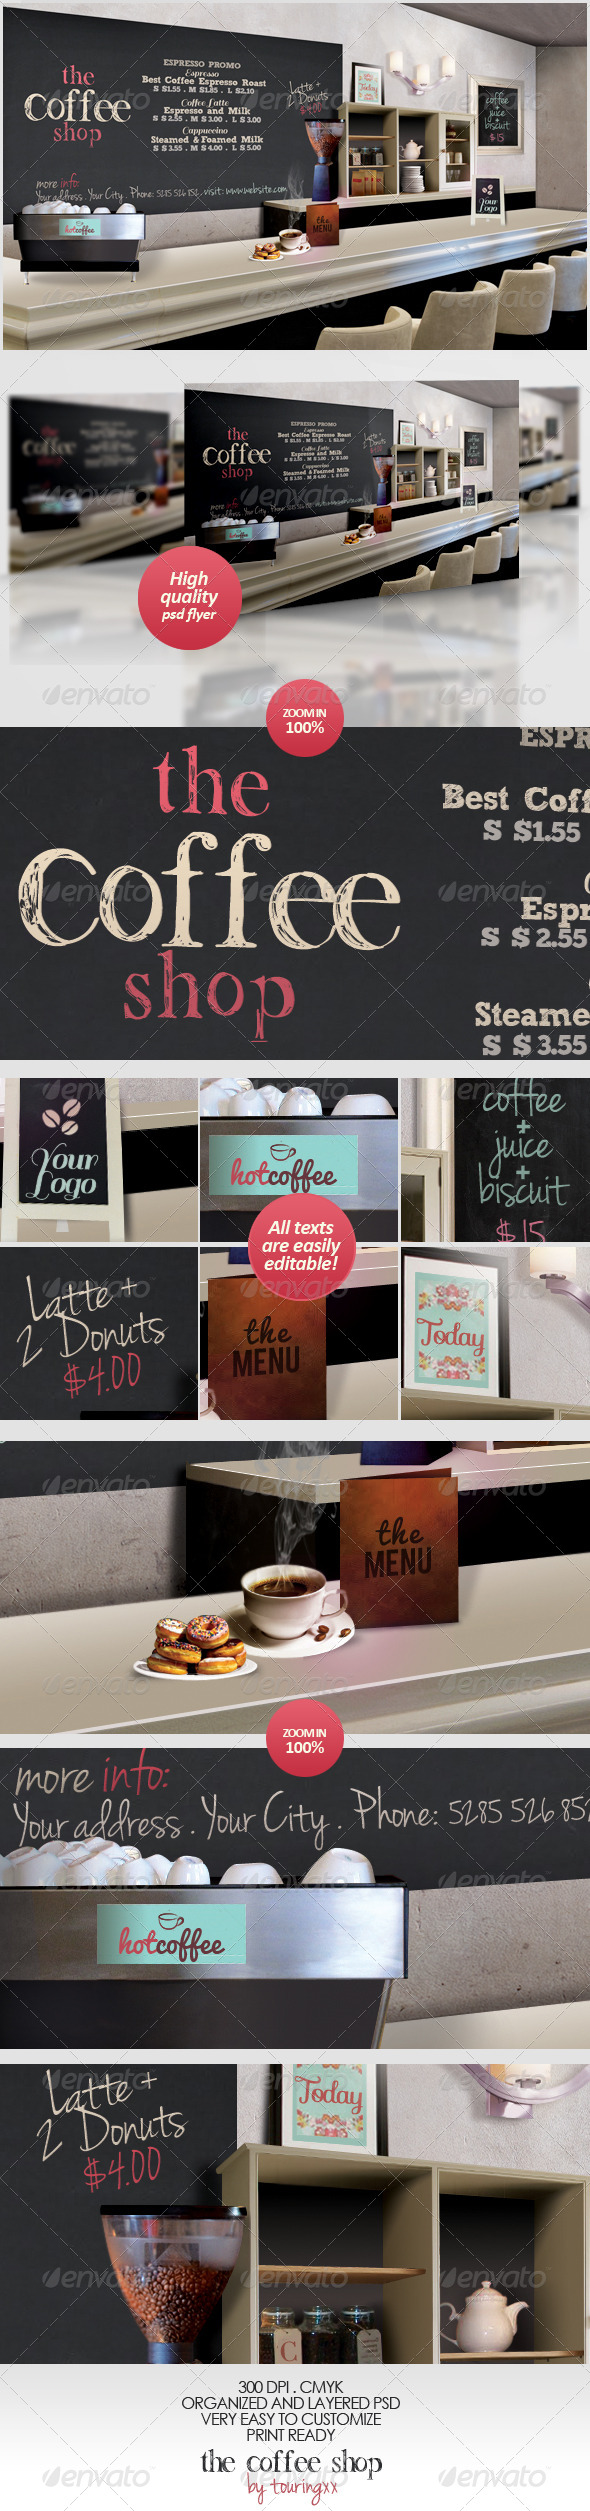 GraphicRiver The Coffee Shop Flyer Template 4802911